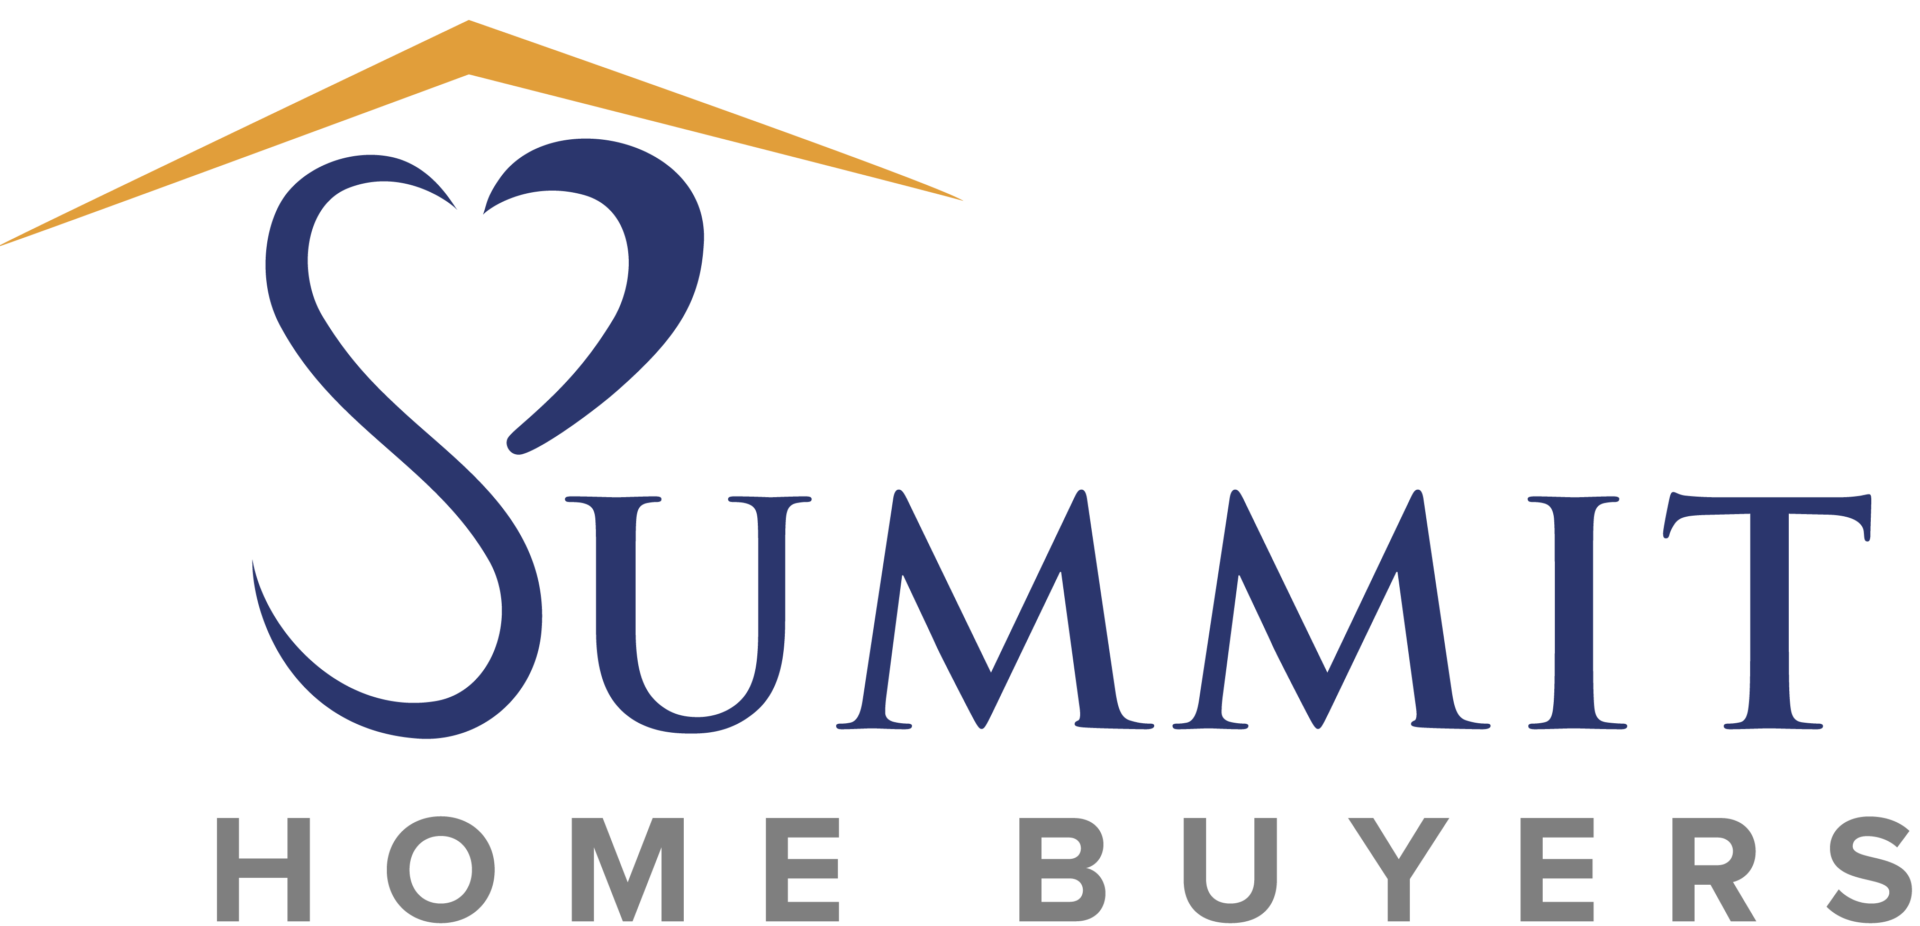 We Buy Houses In UT logo